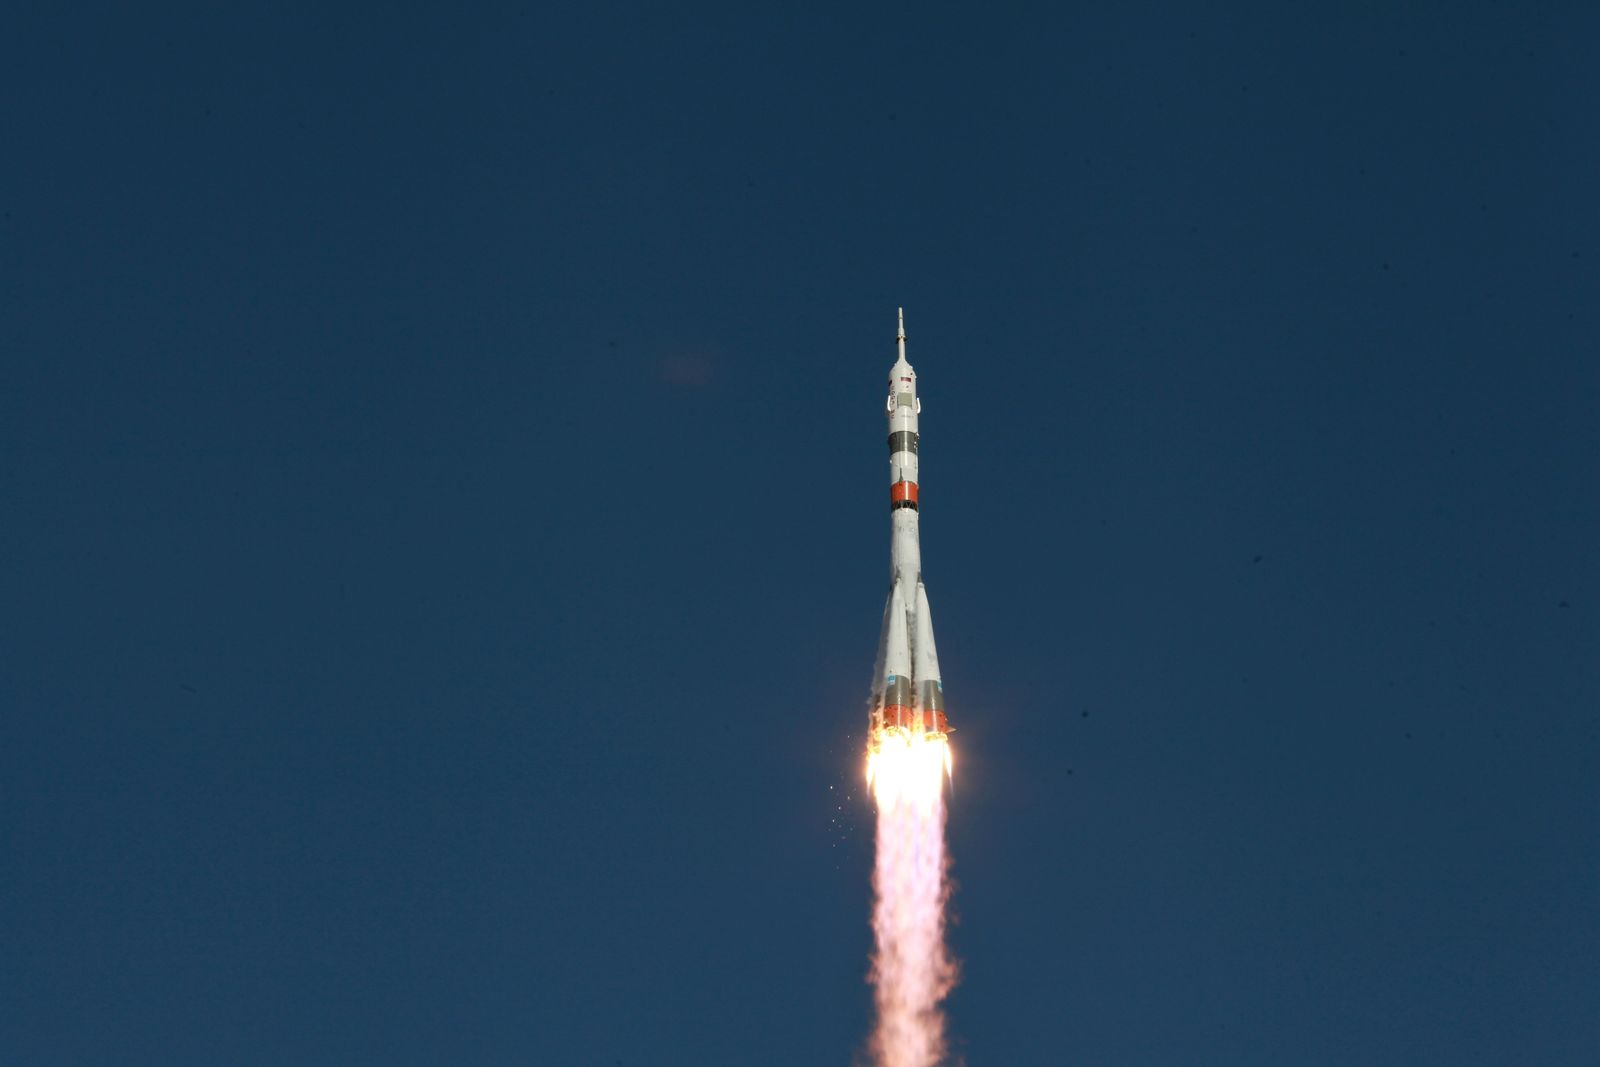 CORRECTING ROCKET NAME AND ADDING ROBOT DETAILS - In this photo taken on Thursday, Aug. 22, 2019, and distributed by Roscosmos Space Agency Press Service, a Soyuz capsule is launched by a new Soyuz 2.1a rocket from the launch pad at Russia's space facility in Baikonur, Kazakhstan.(Roscosmos Space Agency Press Service photo via AP)